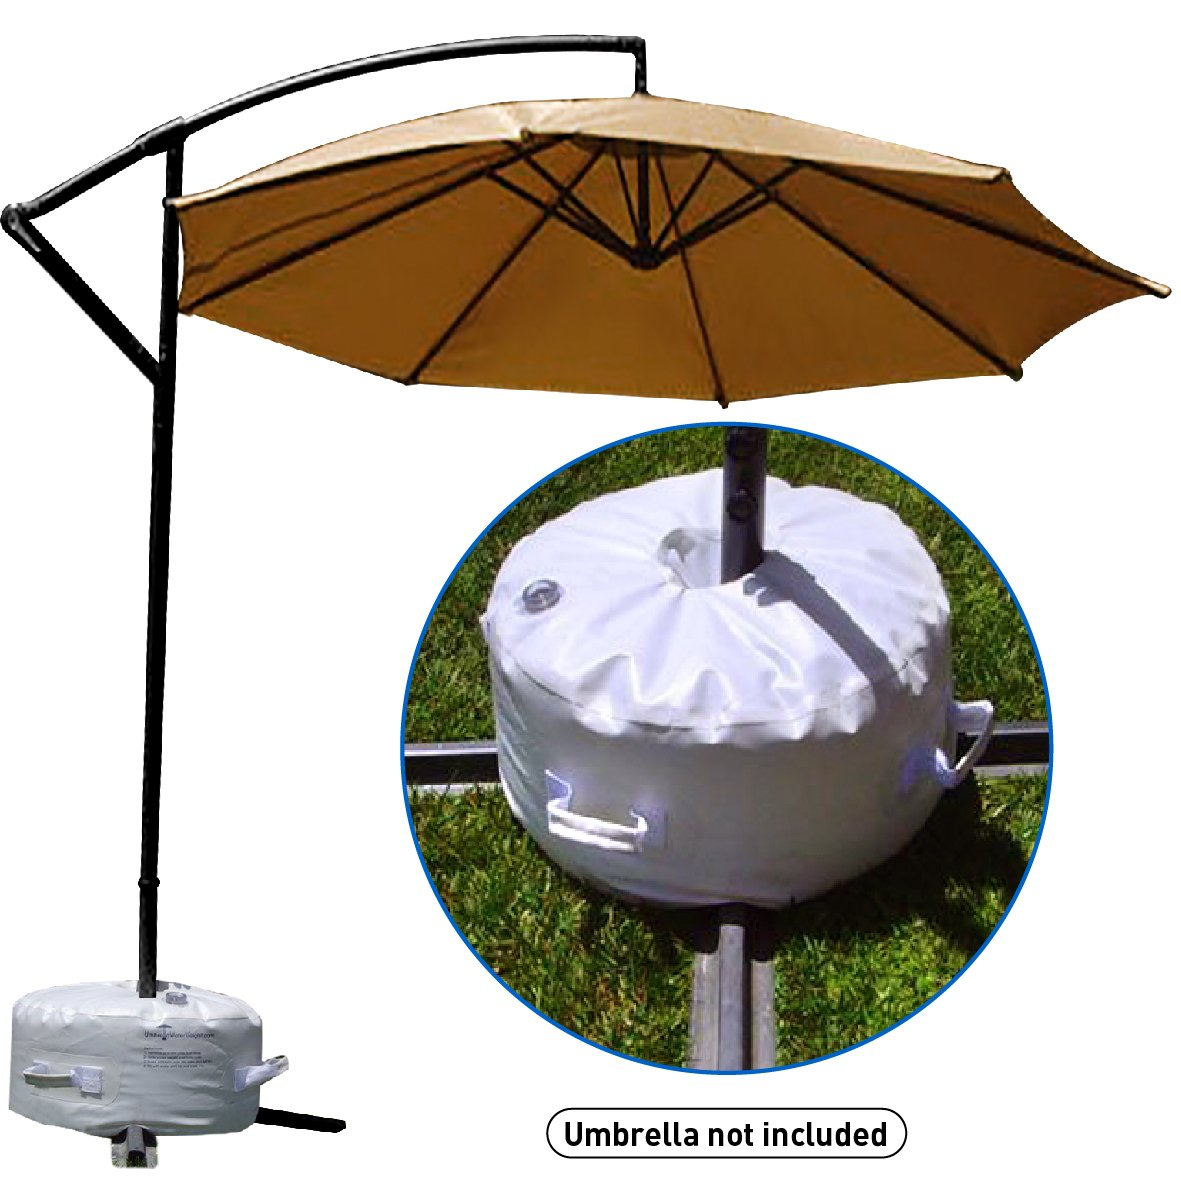 Giantex 23L Round Water Filled Patio Umbrella Base, 20 Heavy Duty Stand Weight, Self-Fillable Outdoor Market Umbrella Holder